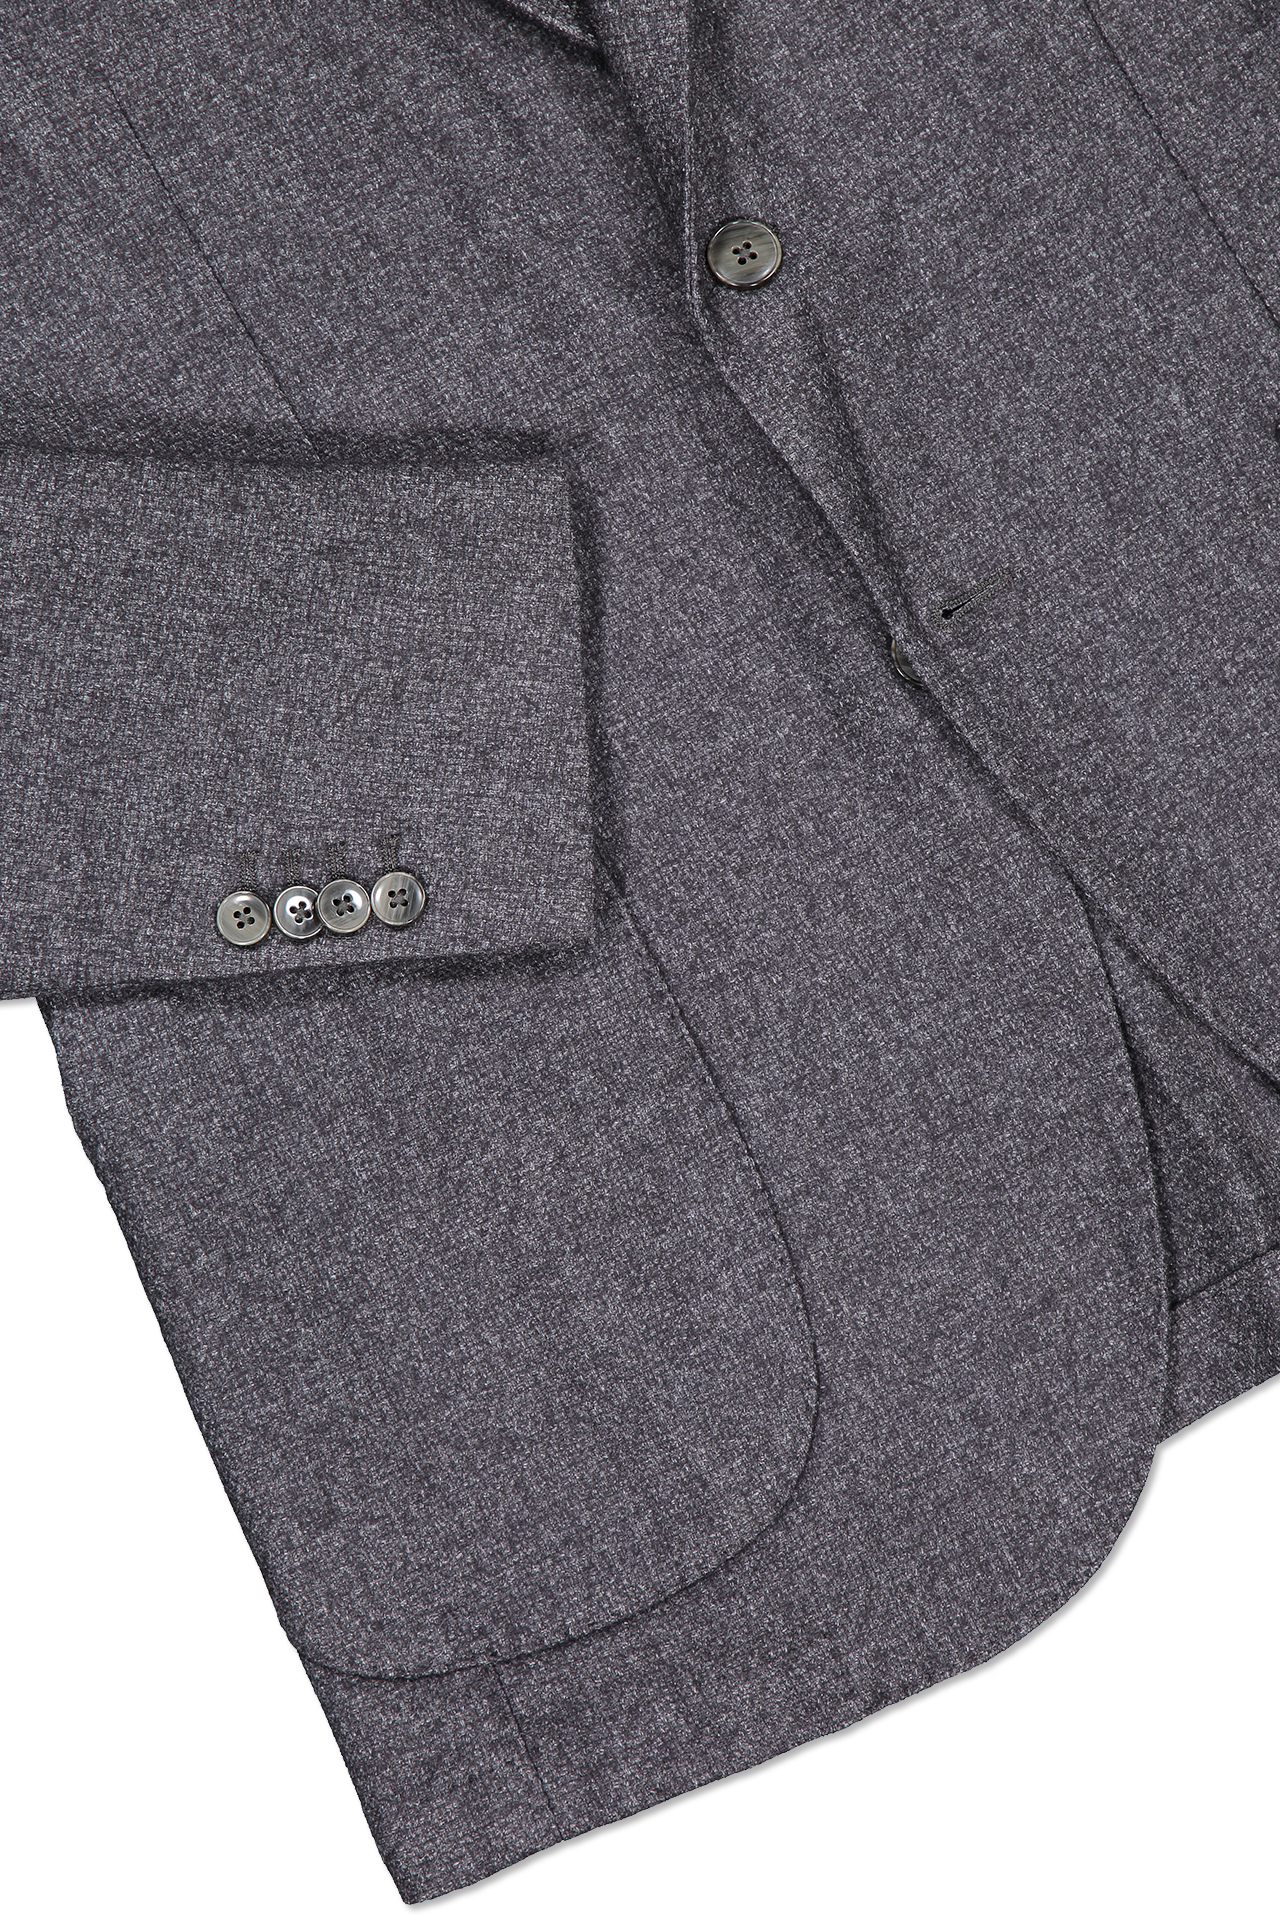 Hemline and sleeve detail image of L.B.M. 1911 Textured Wool Sportcoat